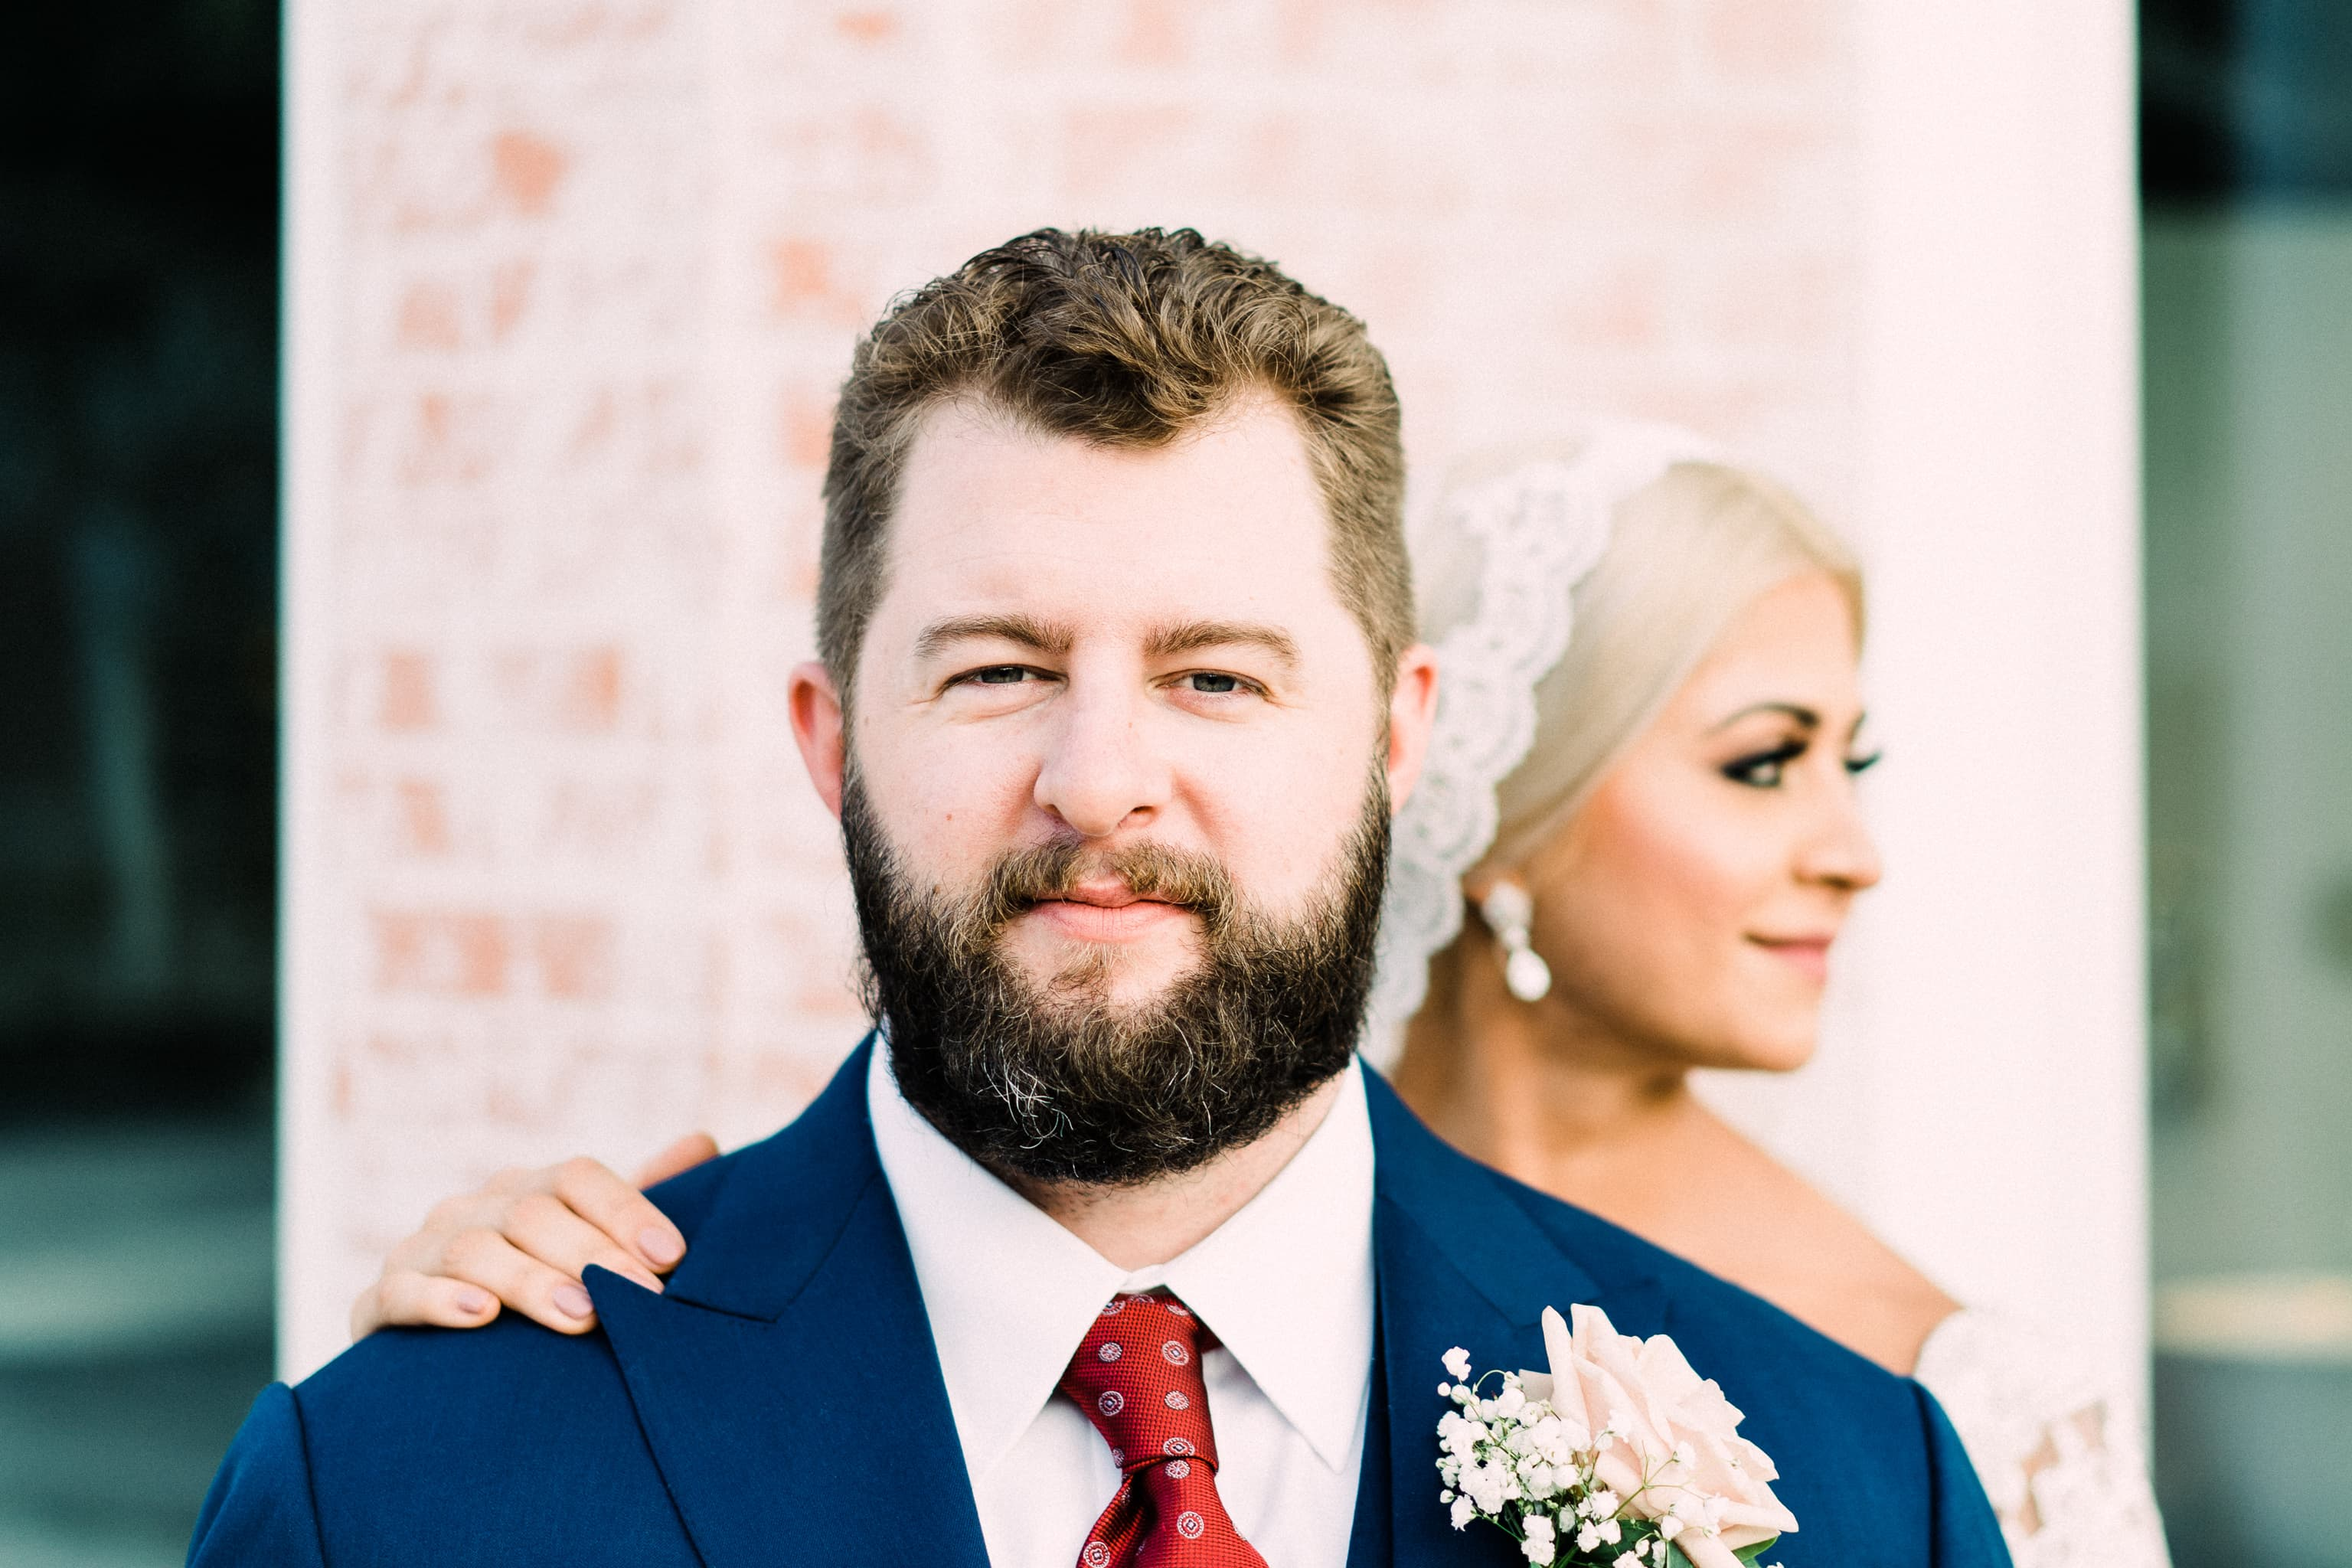 Groom stares into the camera while bride looks away.